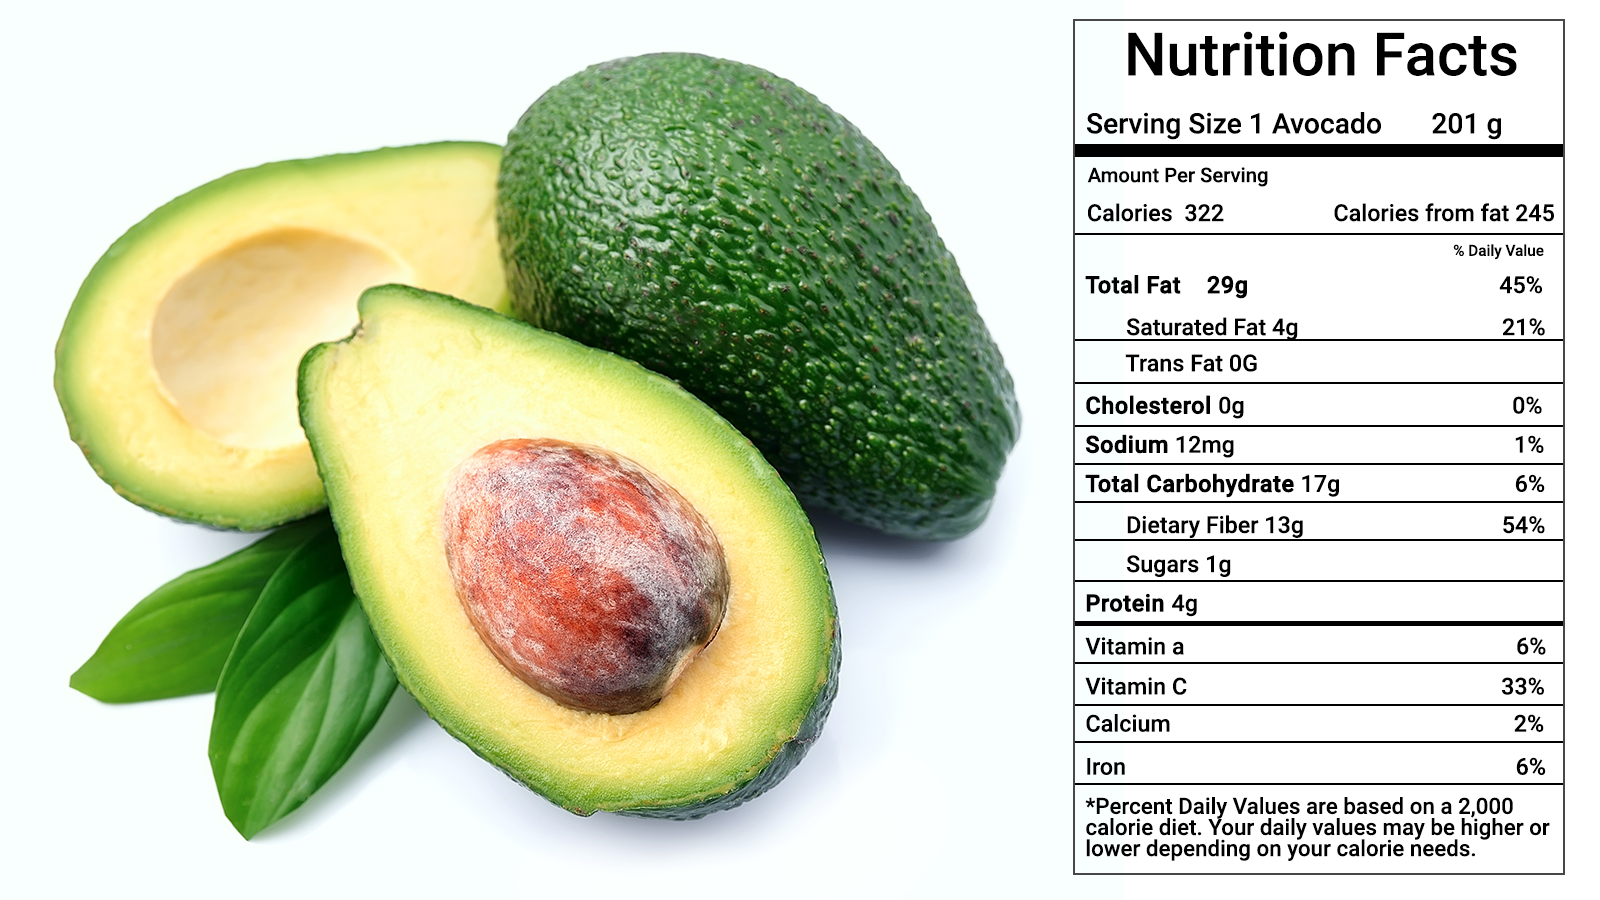 10 Avocado Nutrition Facts Most People Don T Know About Avocado Nutrition Facts Avocado Nutrition Avocado Health Benefits